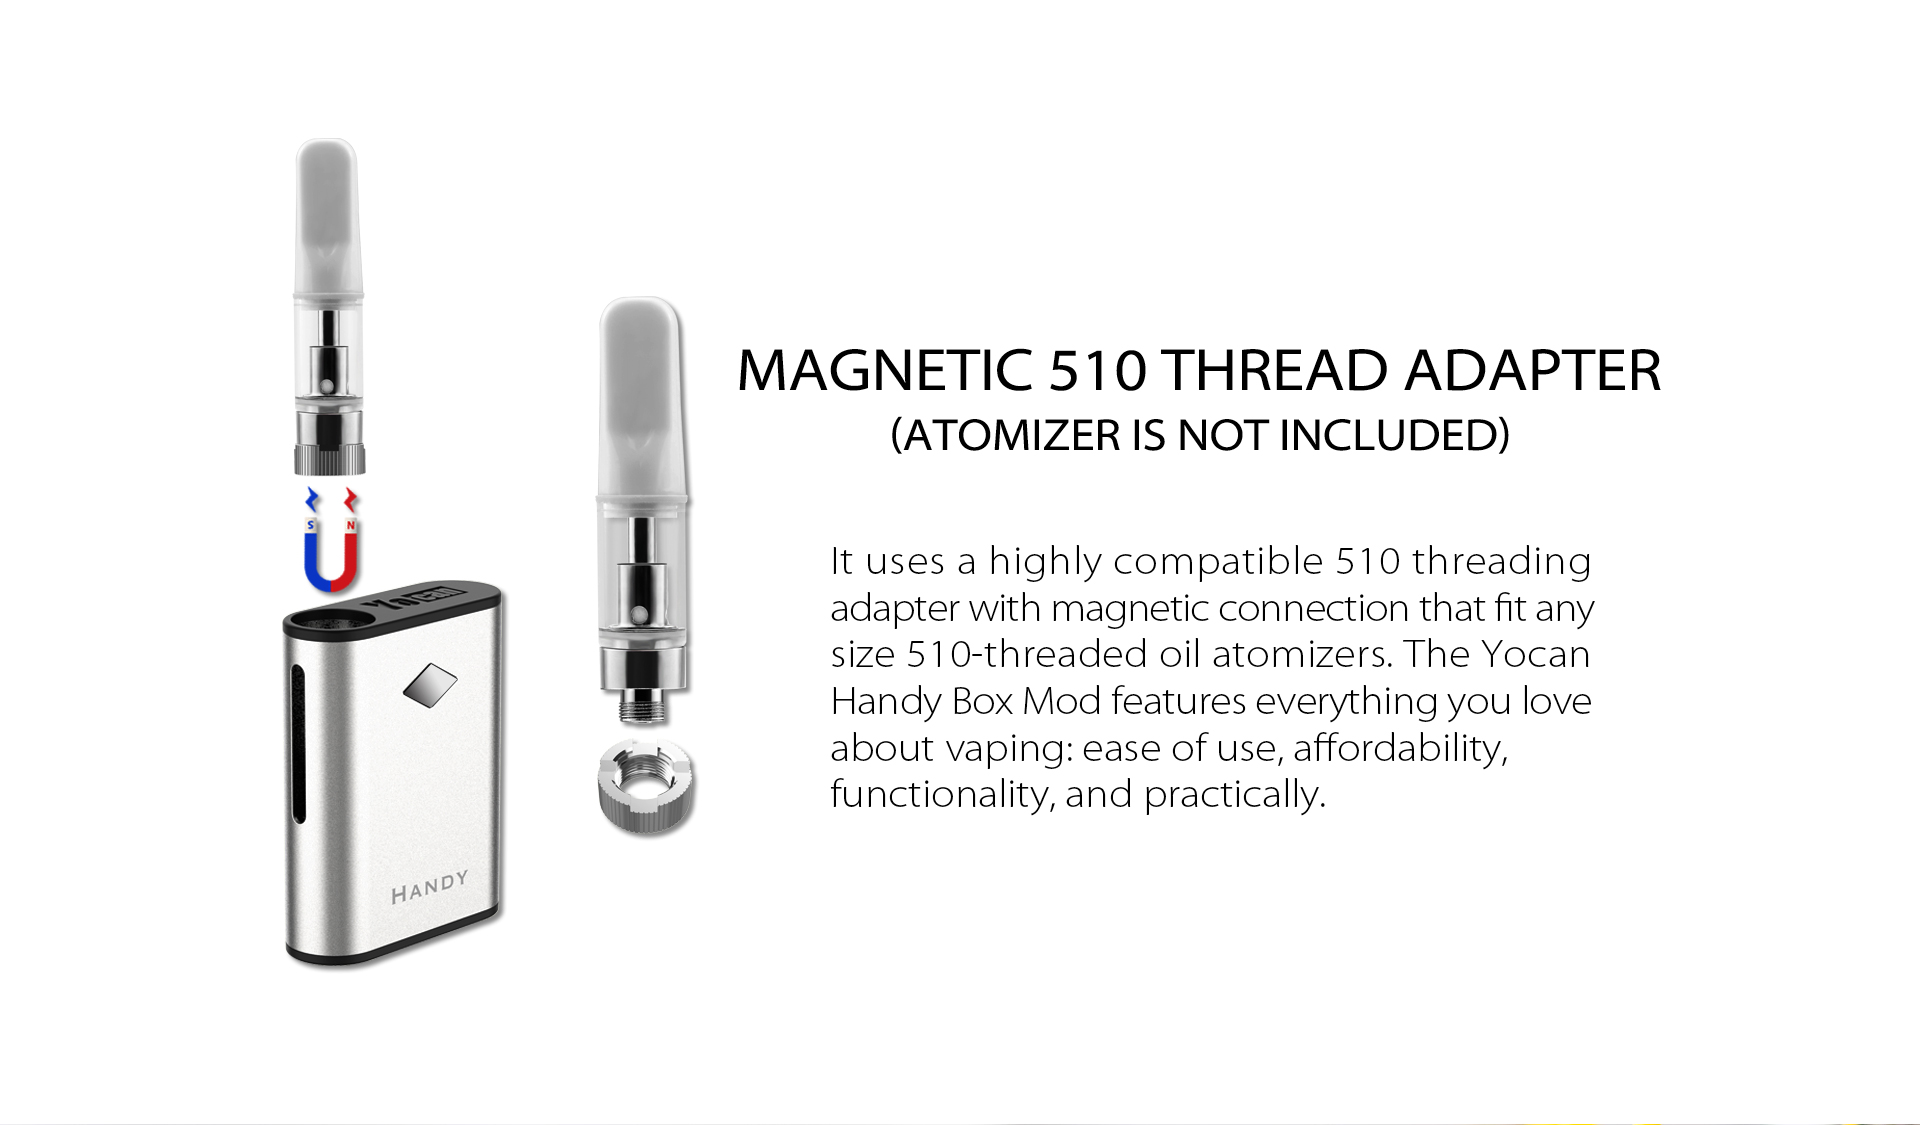 Yocan Handy Vape Battery uses a highly competible 510 threading adapter with magnetic connection that fit any sized 510-threaded oil atomizers.